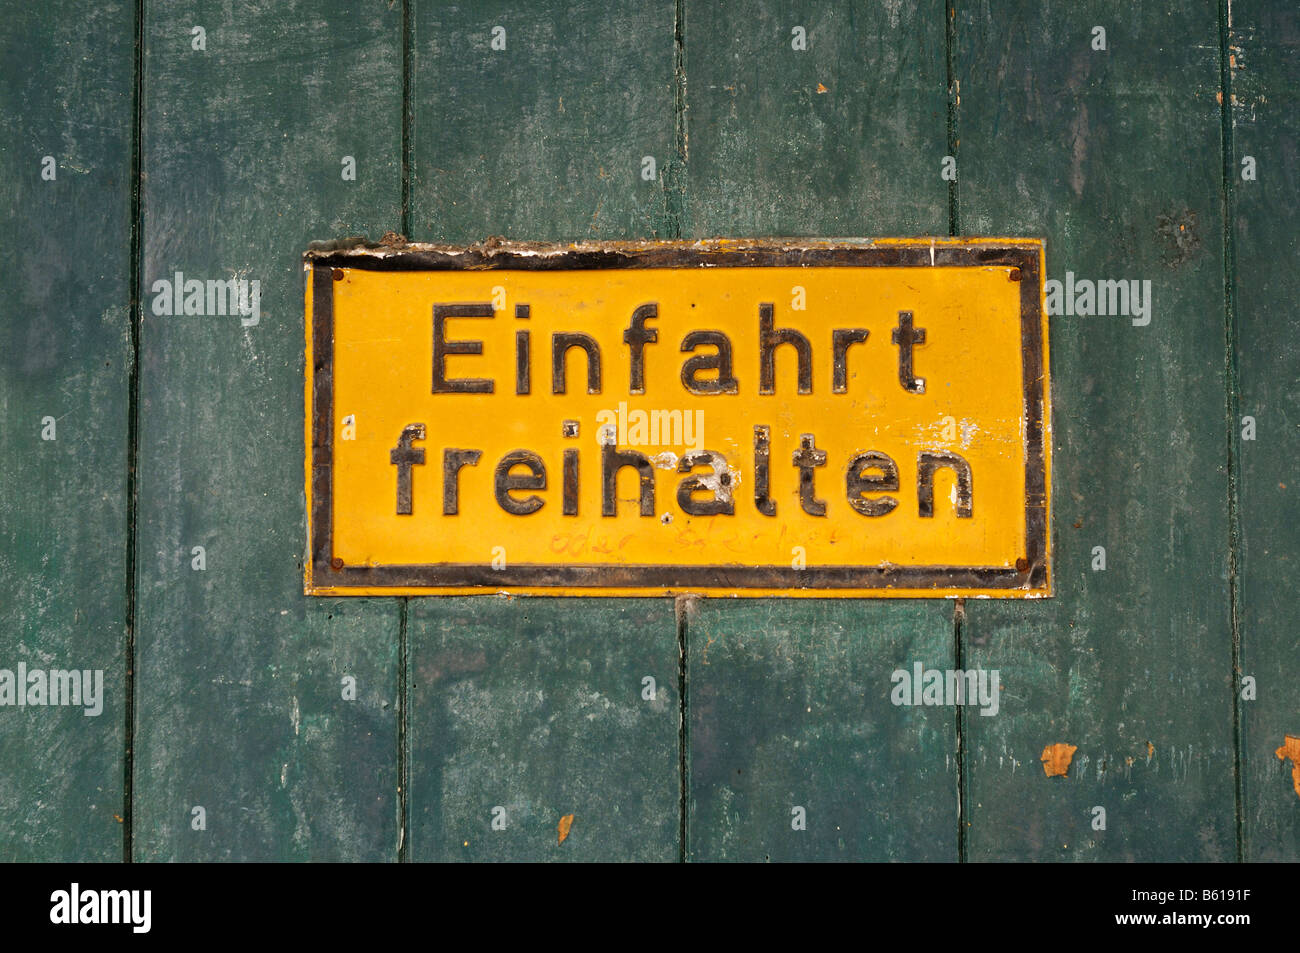 Old yellow sign on a rustical wooden gate: Einfahrt freihalten, Keep the Entrance Clear - Stock Image